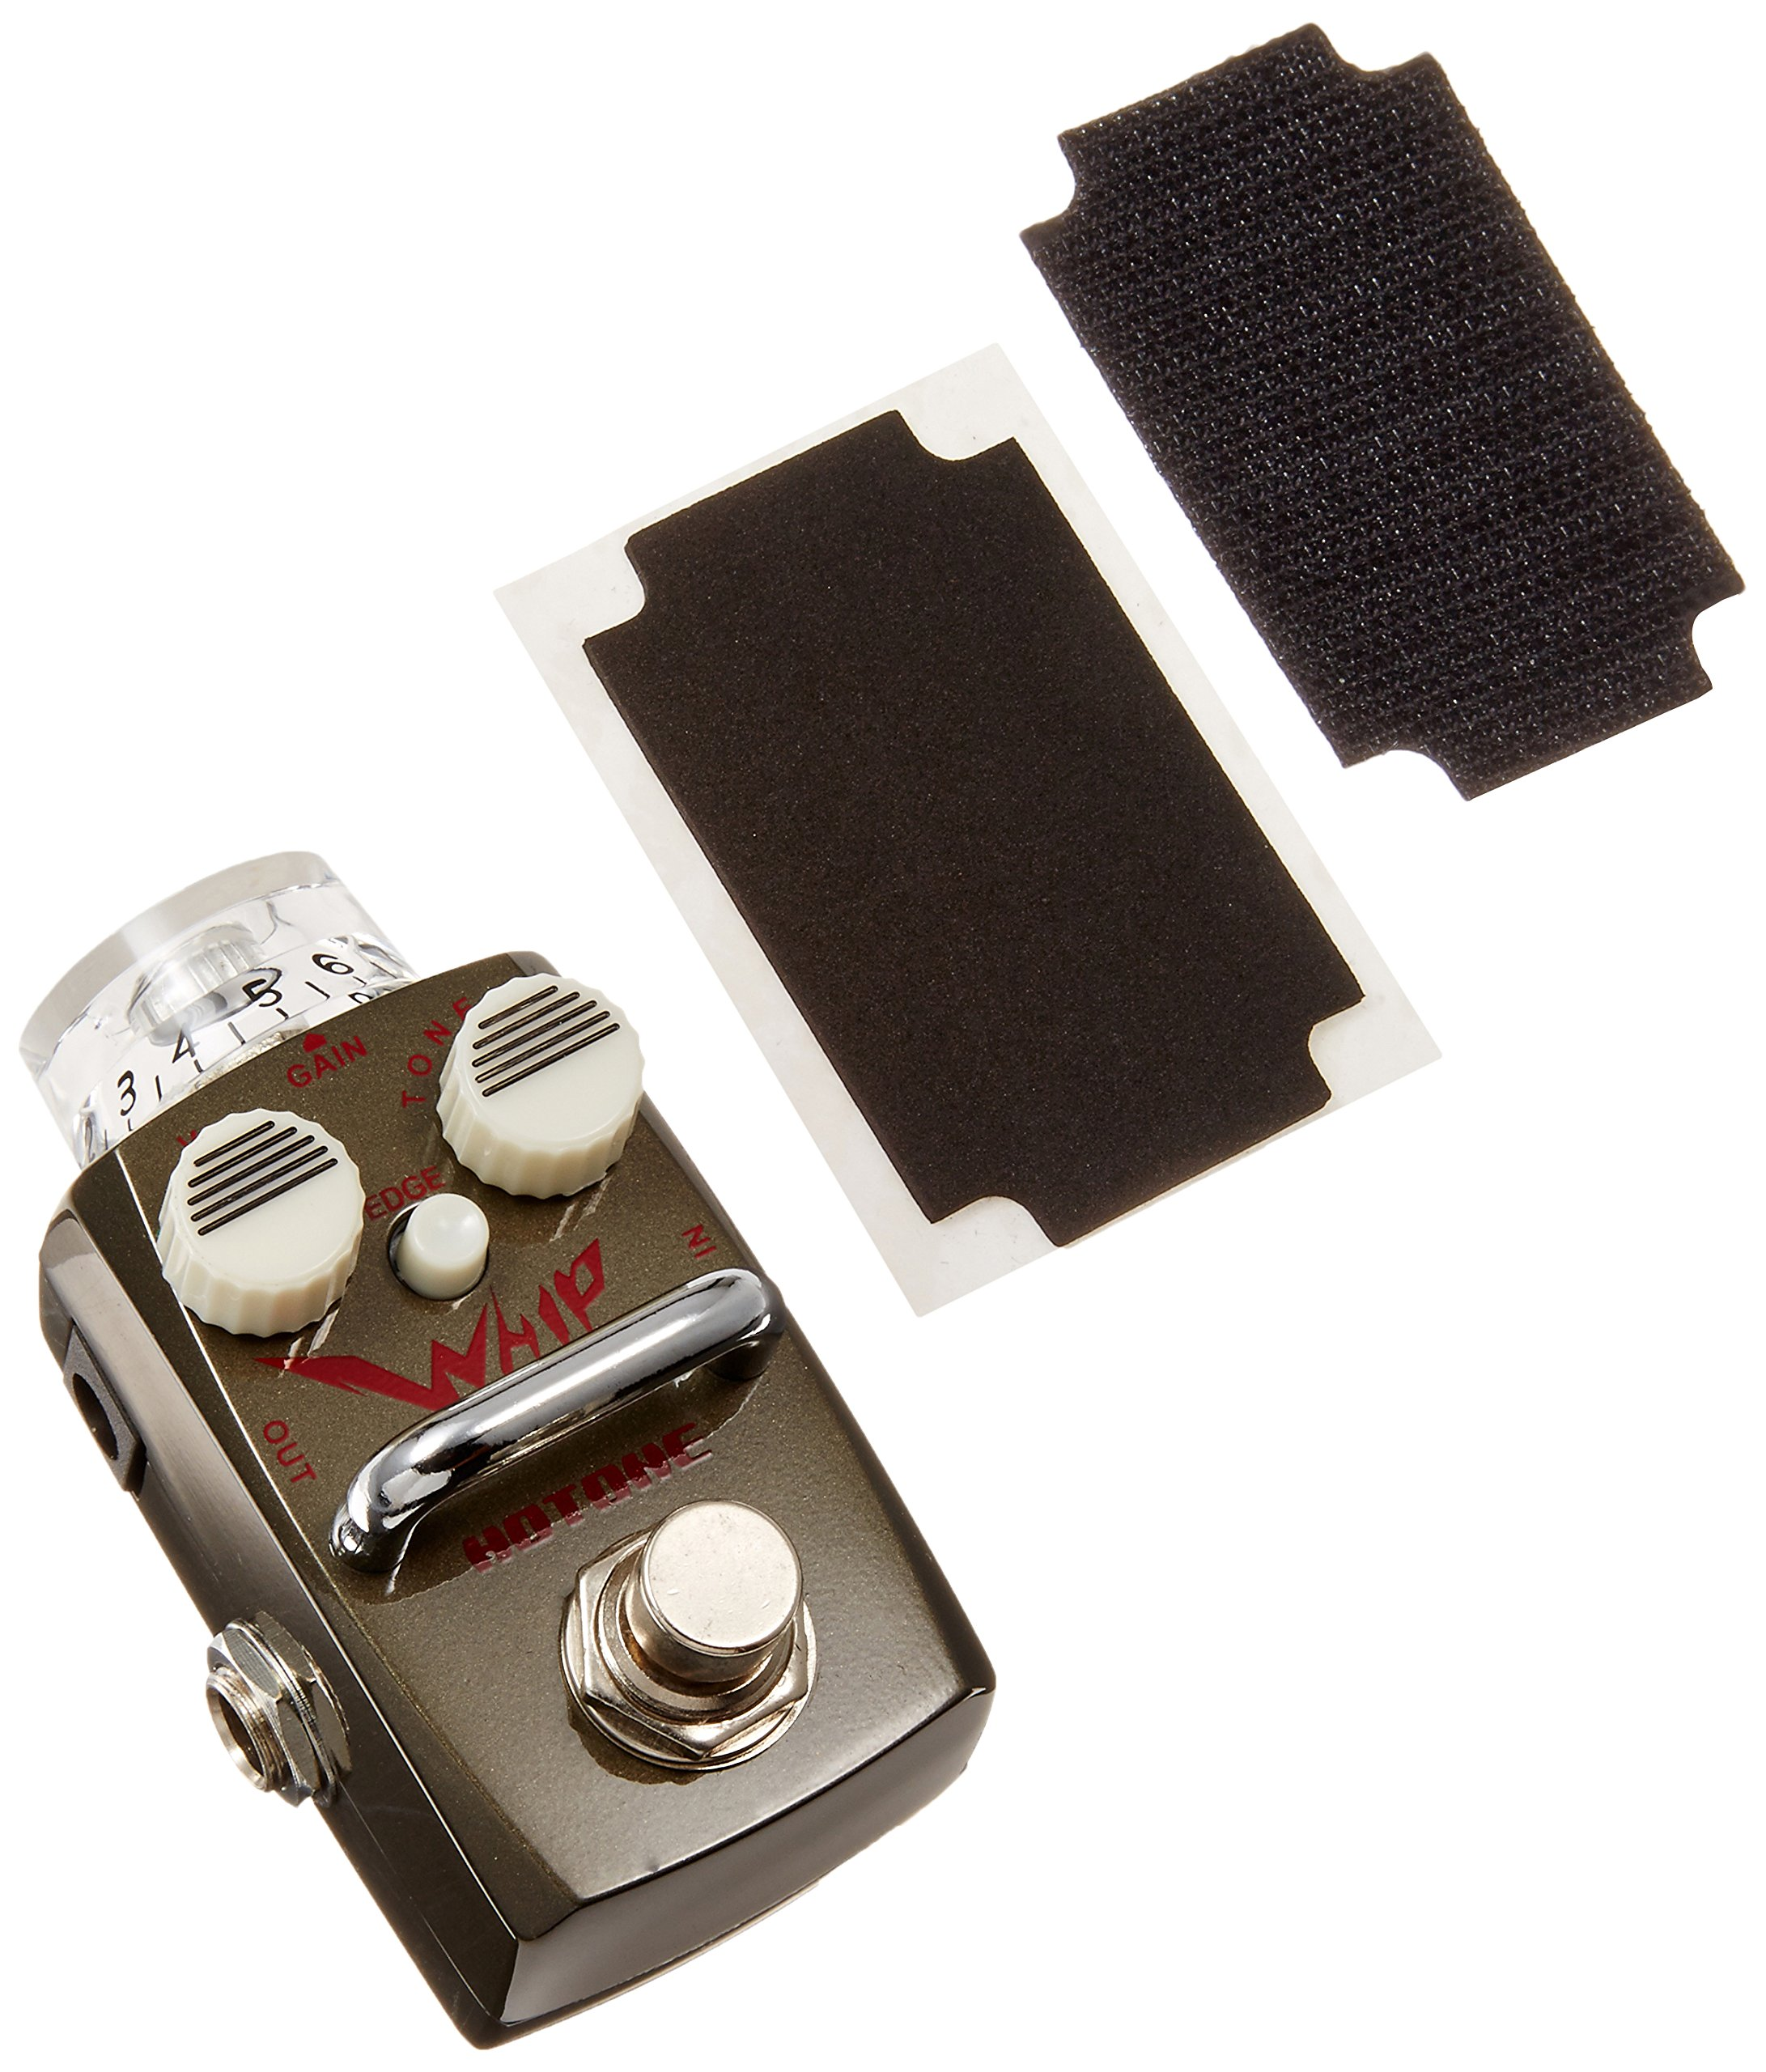 Hotone Skyline Series WHIP Compact Metal Distortion Guitar Effects Pedal